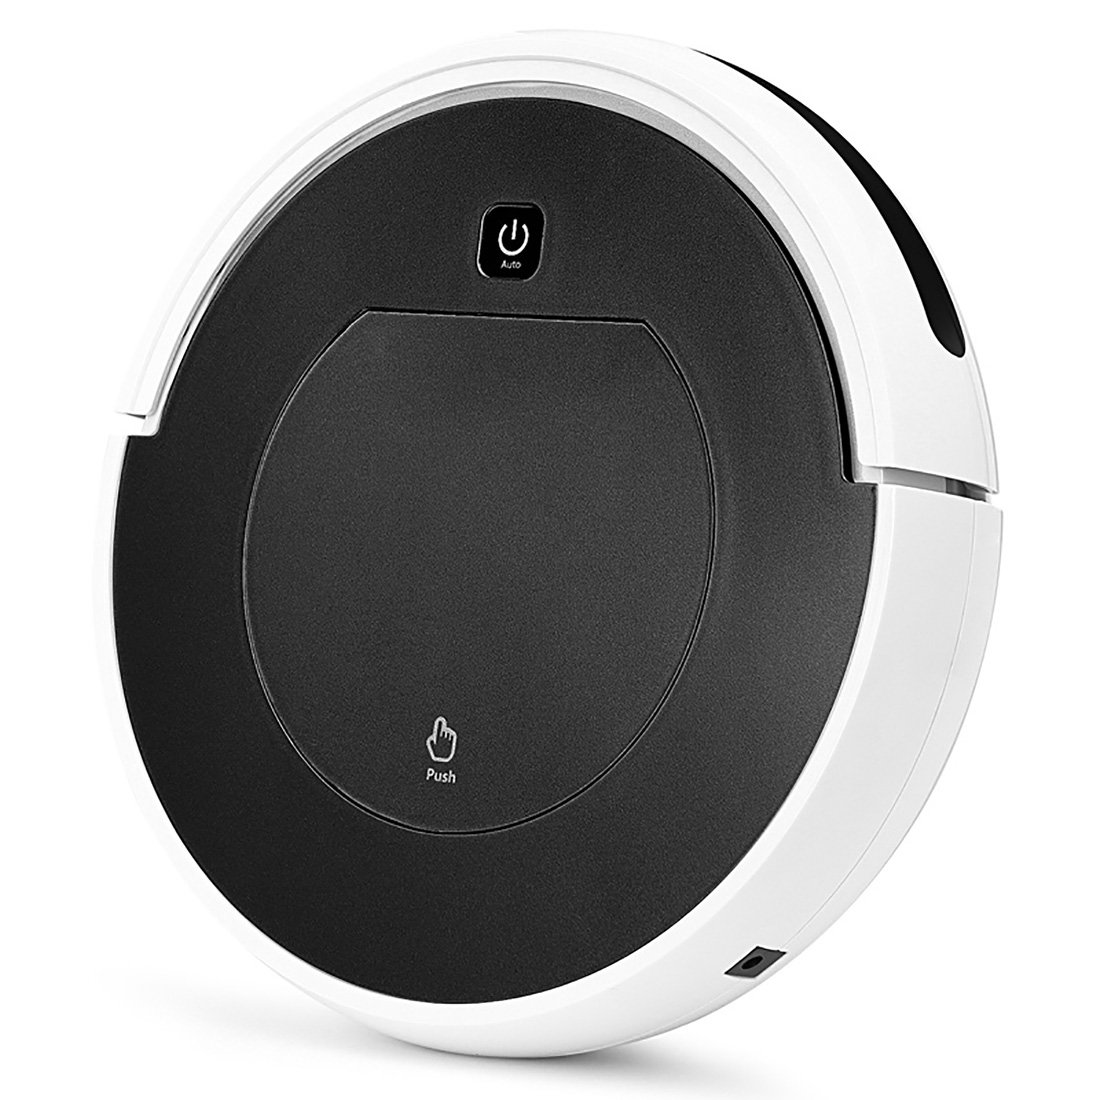 FENGRUI Robot Vacuum Cleaner Automatic Mini Strong Suction Remote Control HEPA Filter Robotic Vacuums Dog Pets Hair Hardwood Floor Surfaces 11.4x11.4x2.95 Inches Black